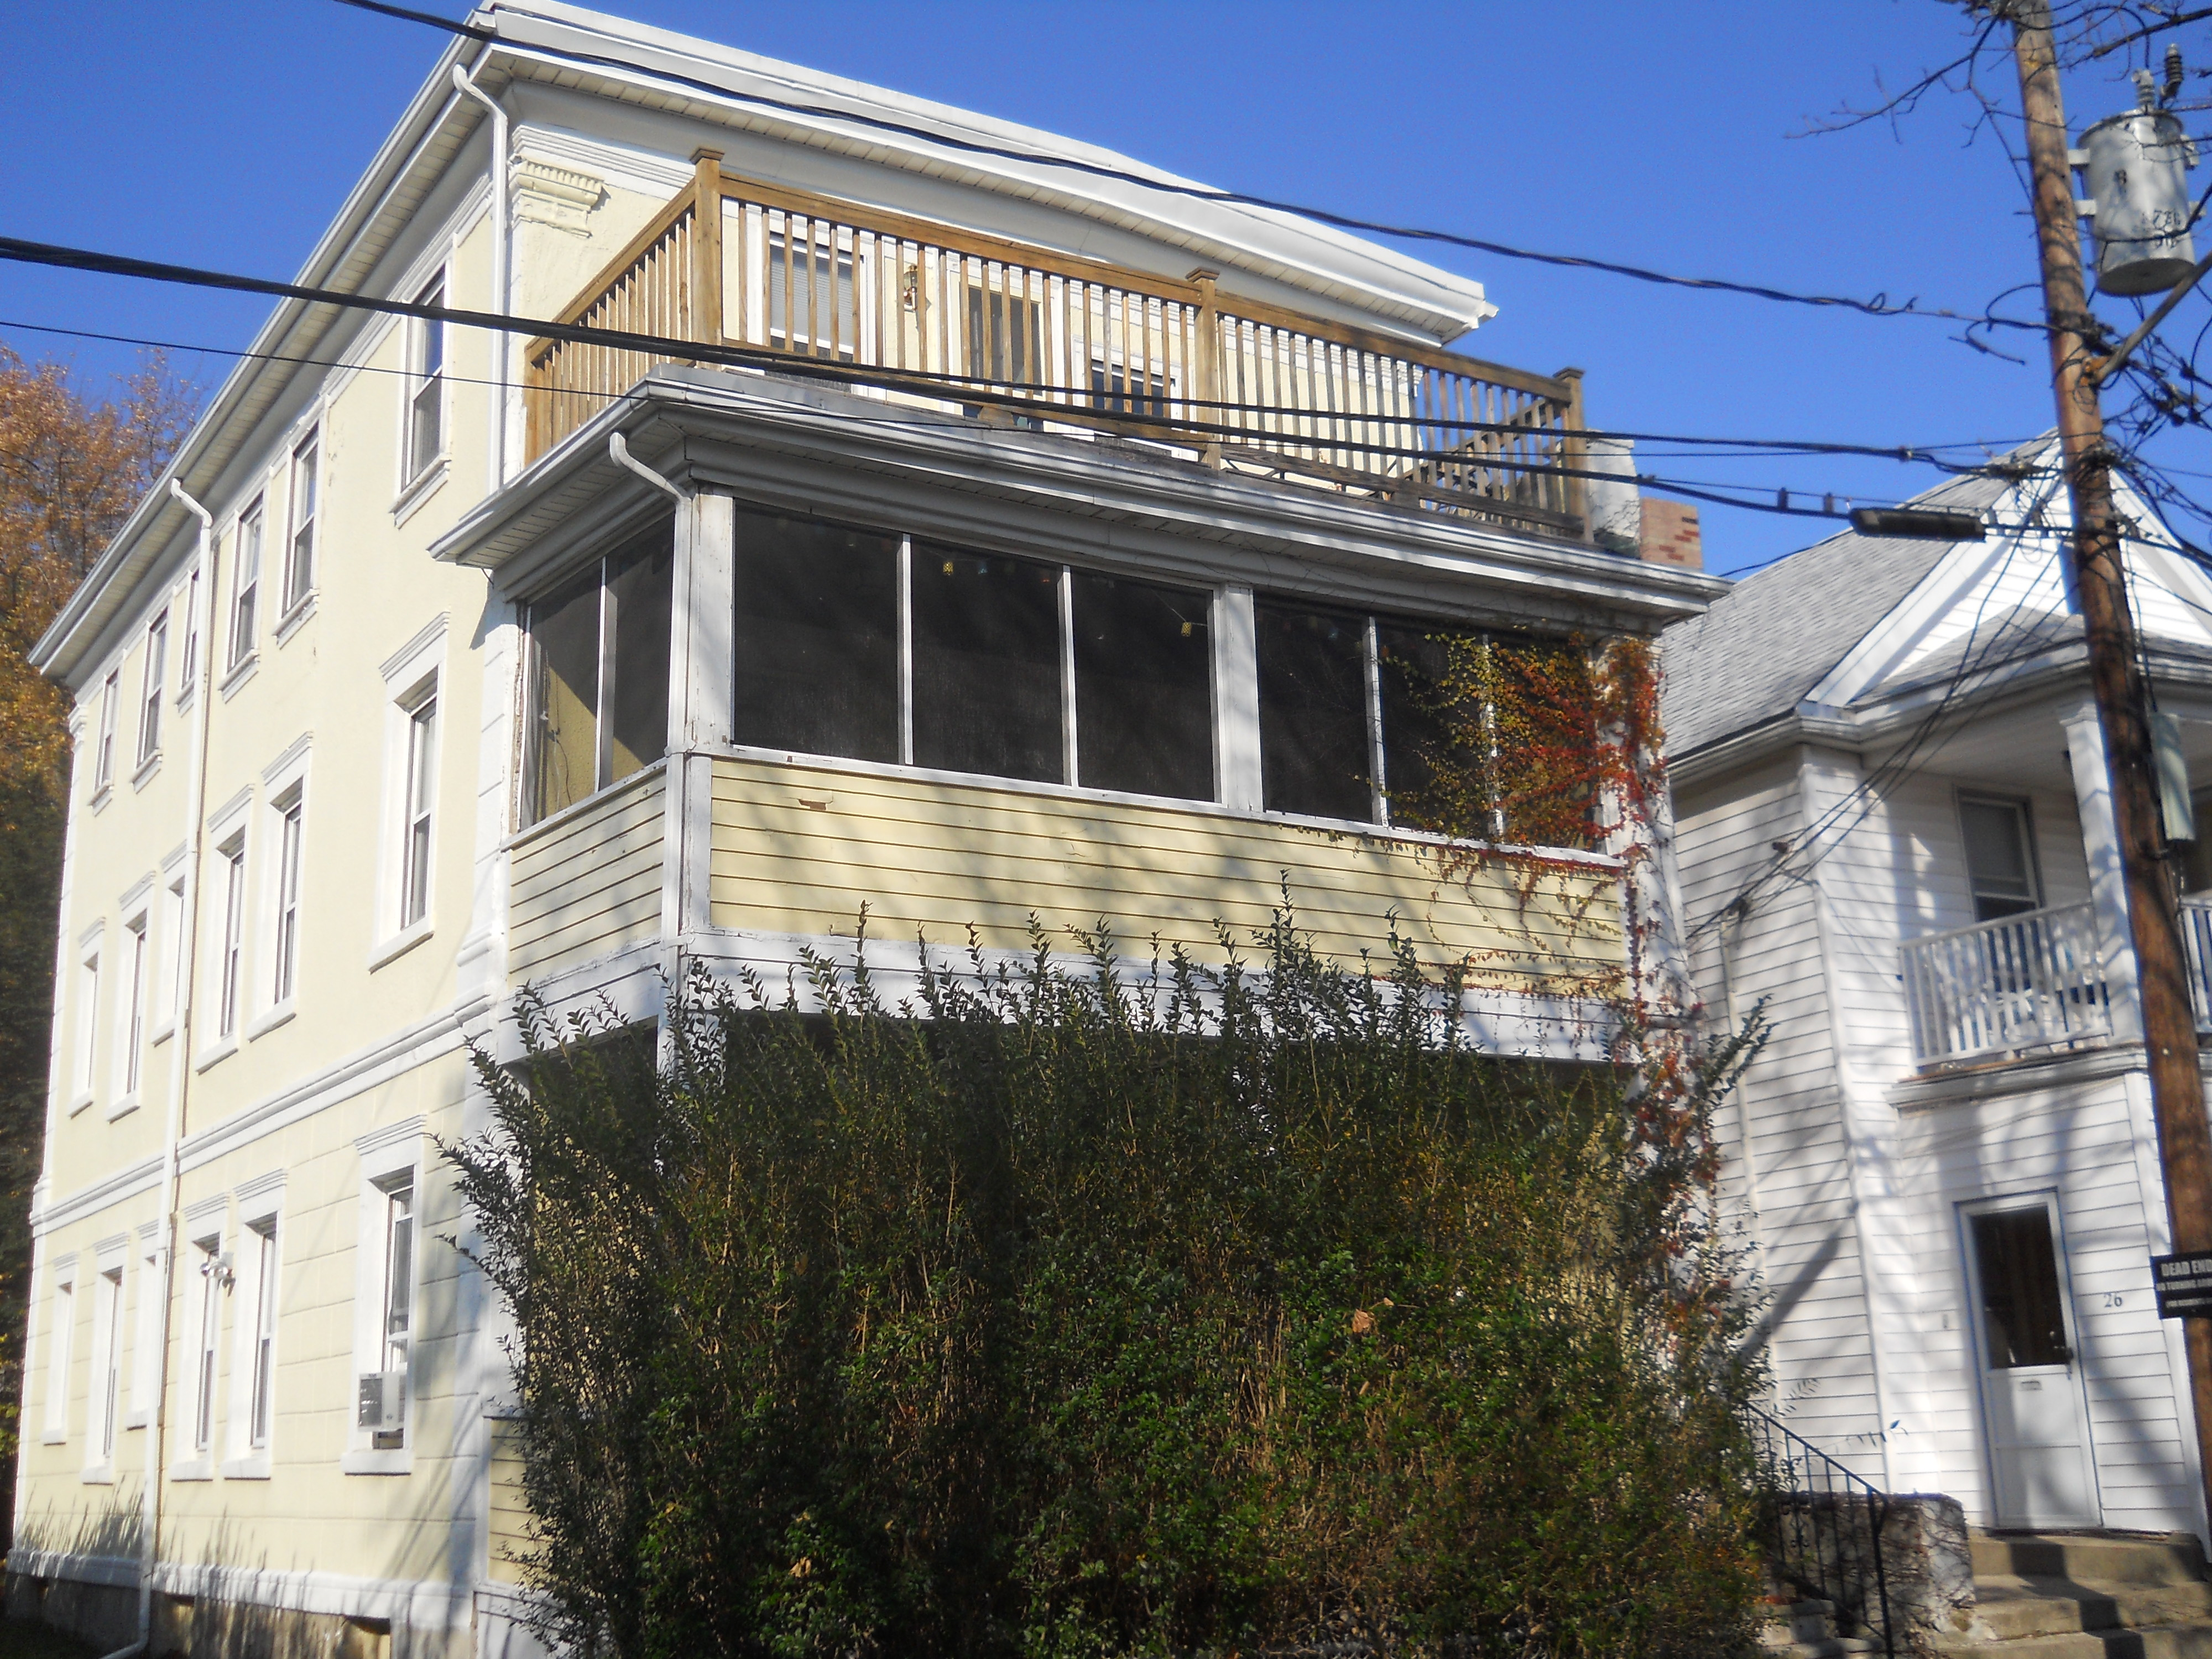 Condo for Rent in Roslindale